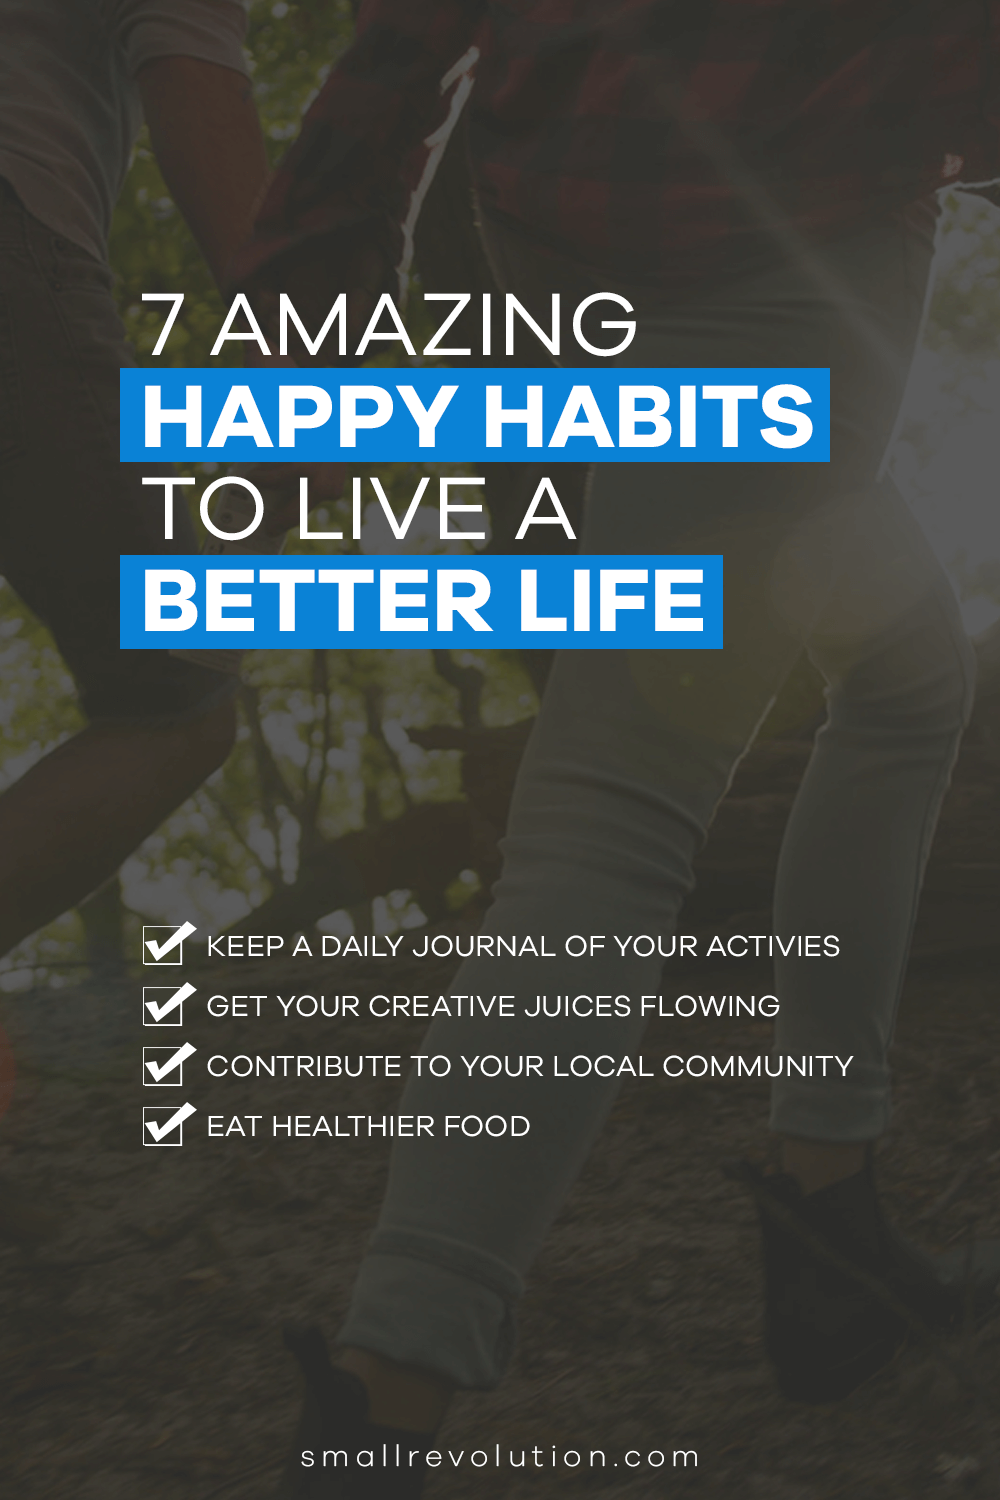 7 Amazing Habits to Live a Better Life